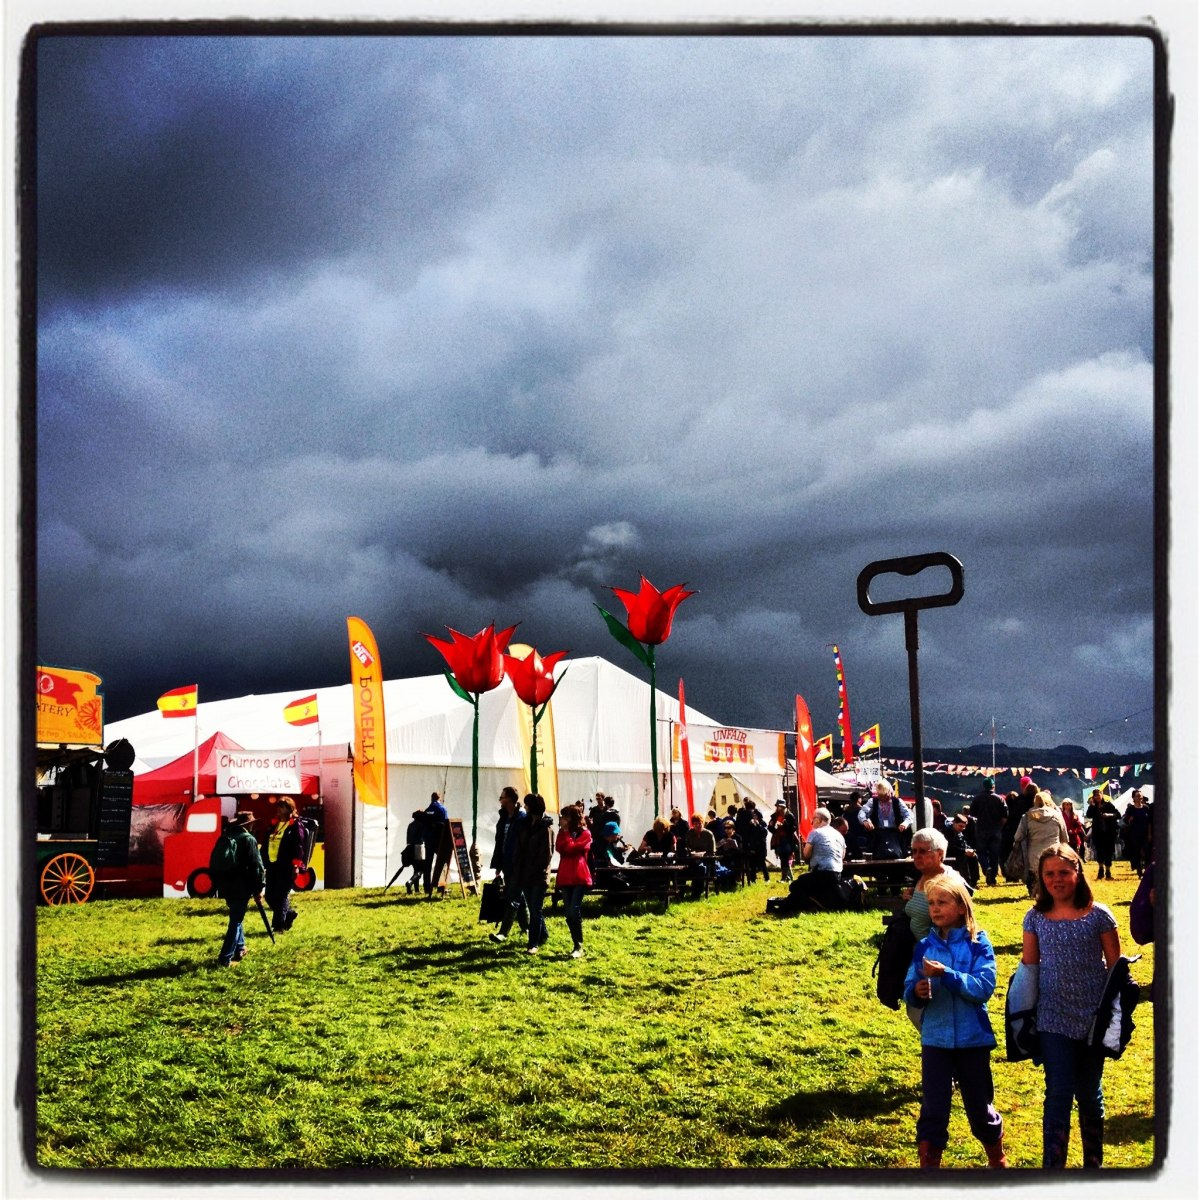 The sunshine before the storm on Saturday at Greenbelt 2012